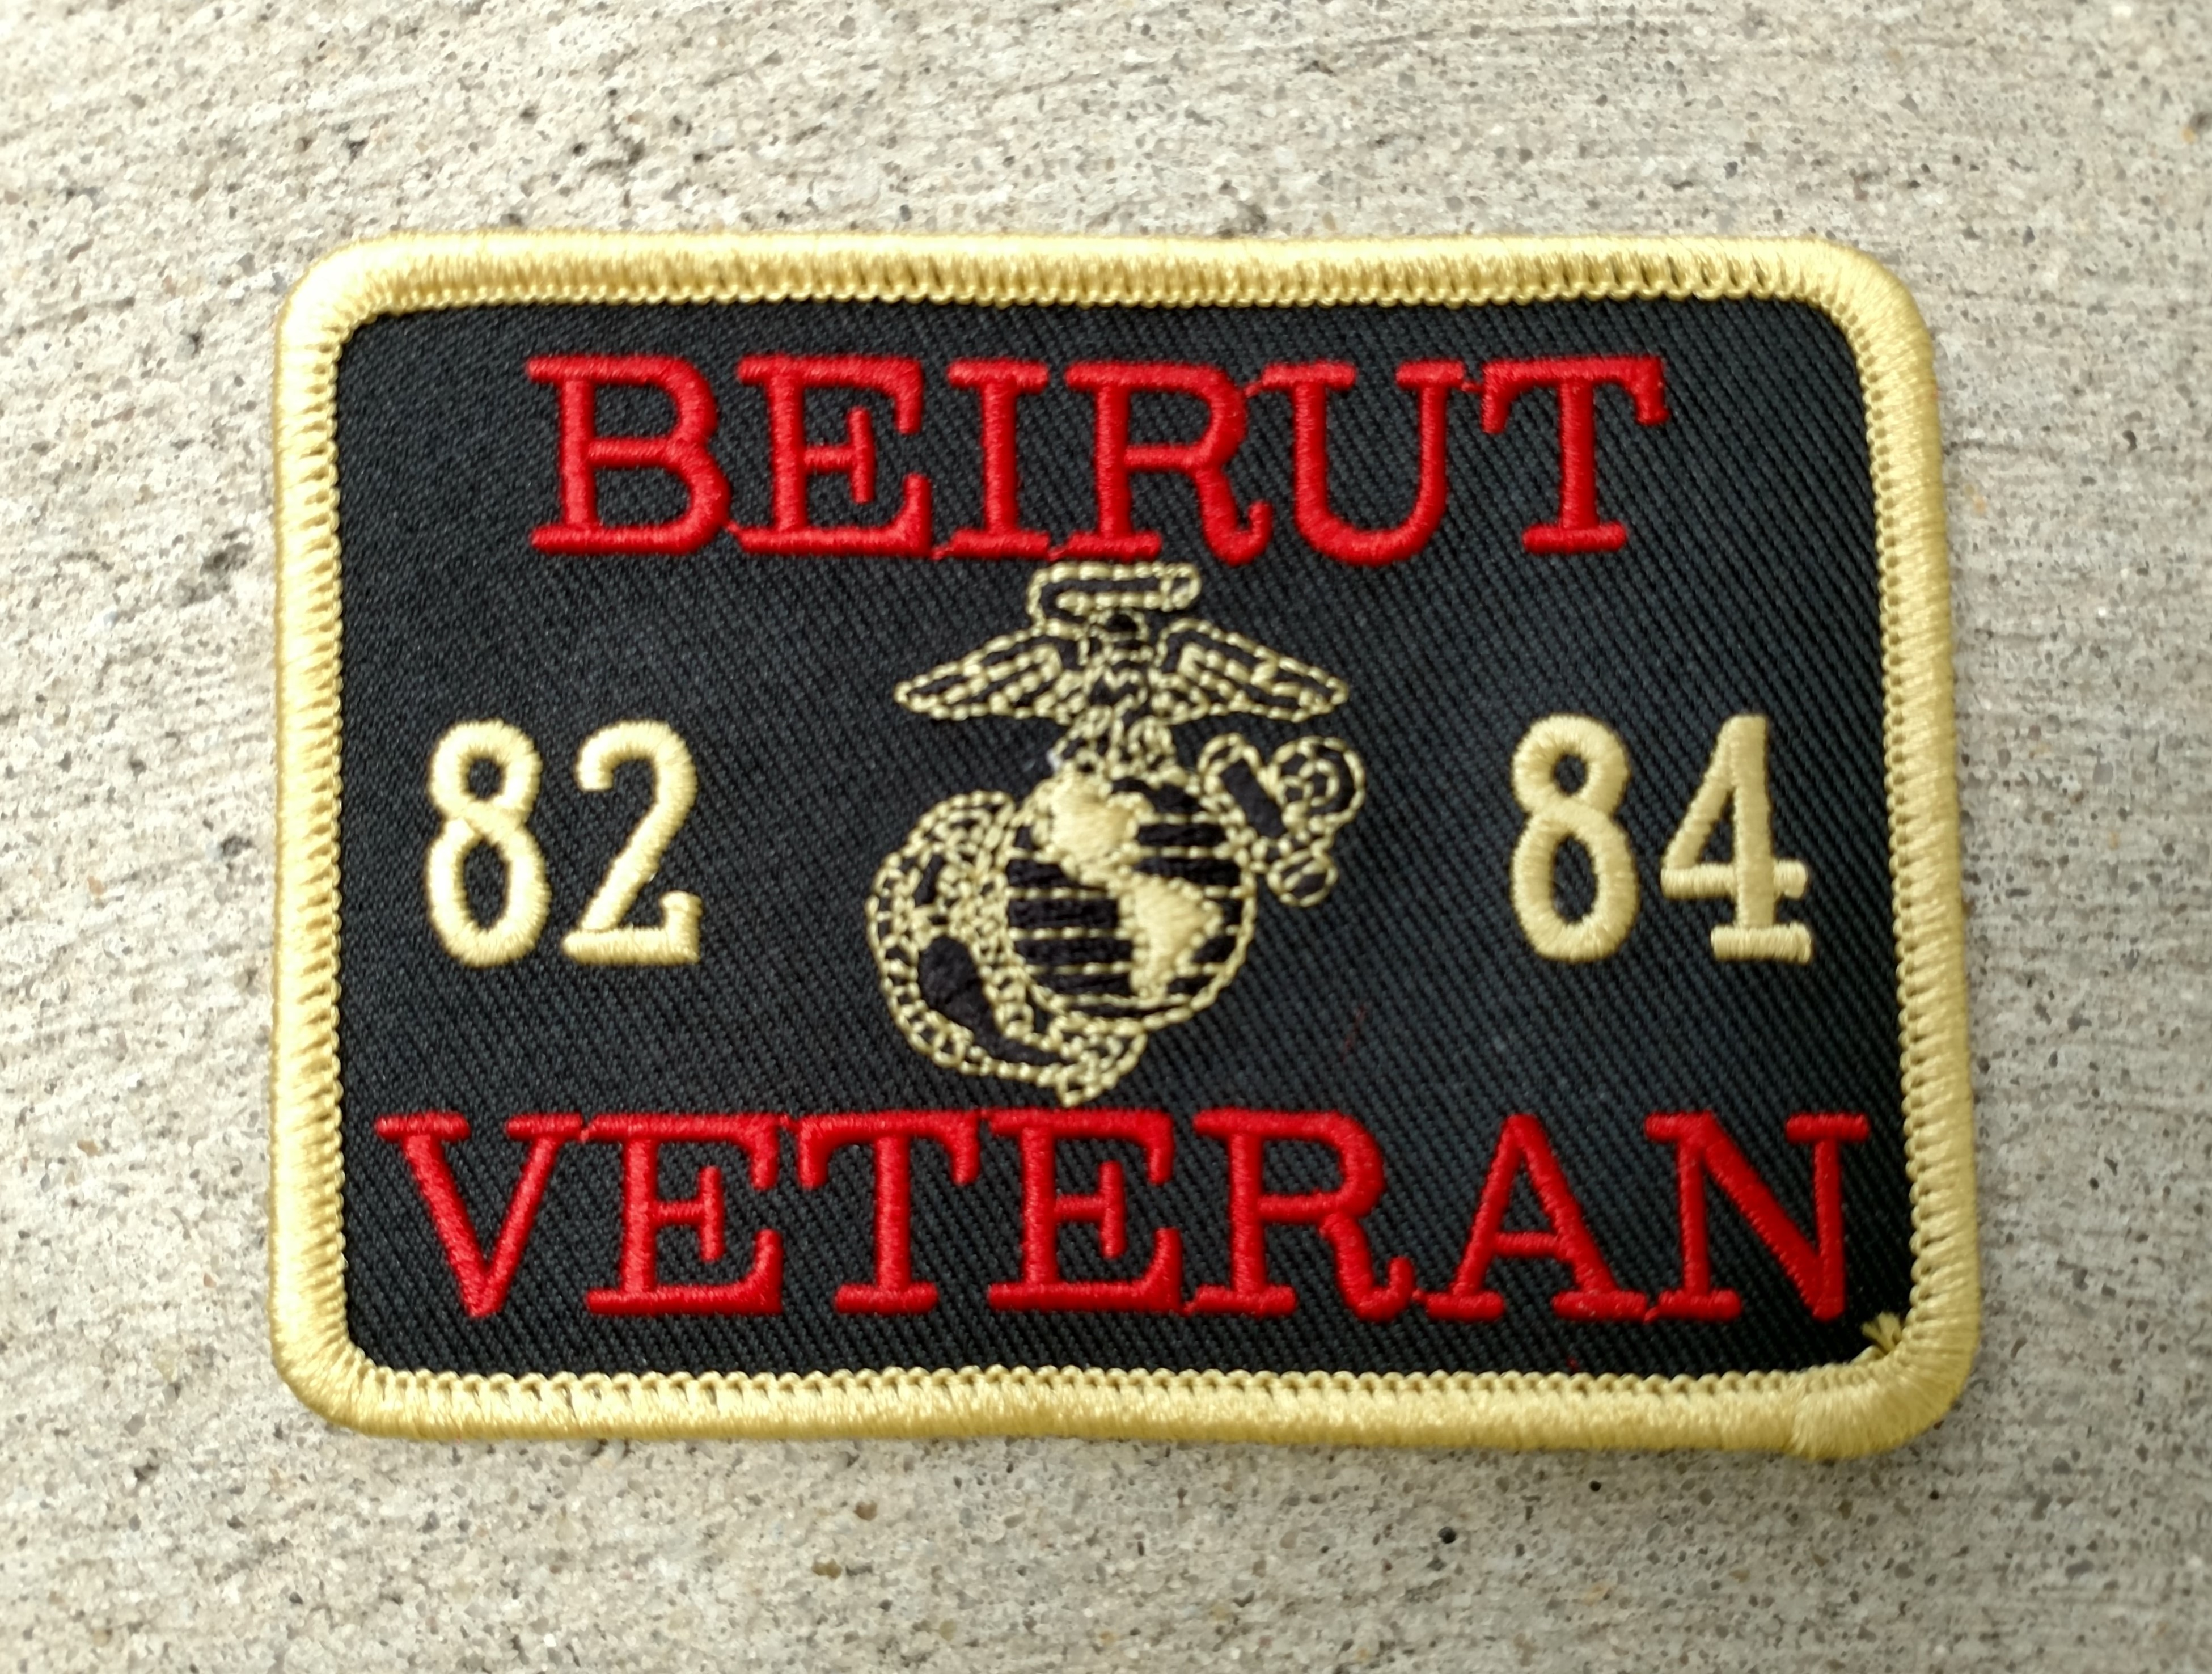 NEW Beirut Veteran Patch